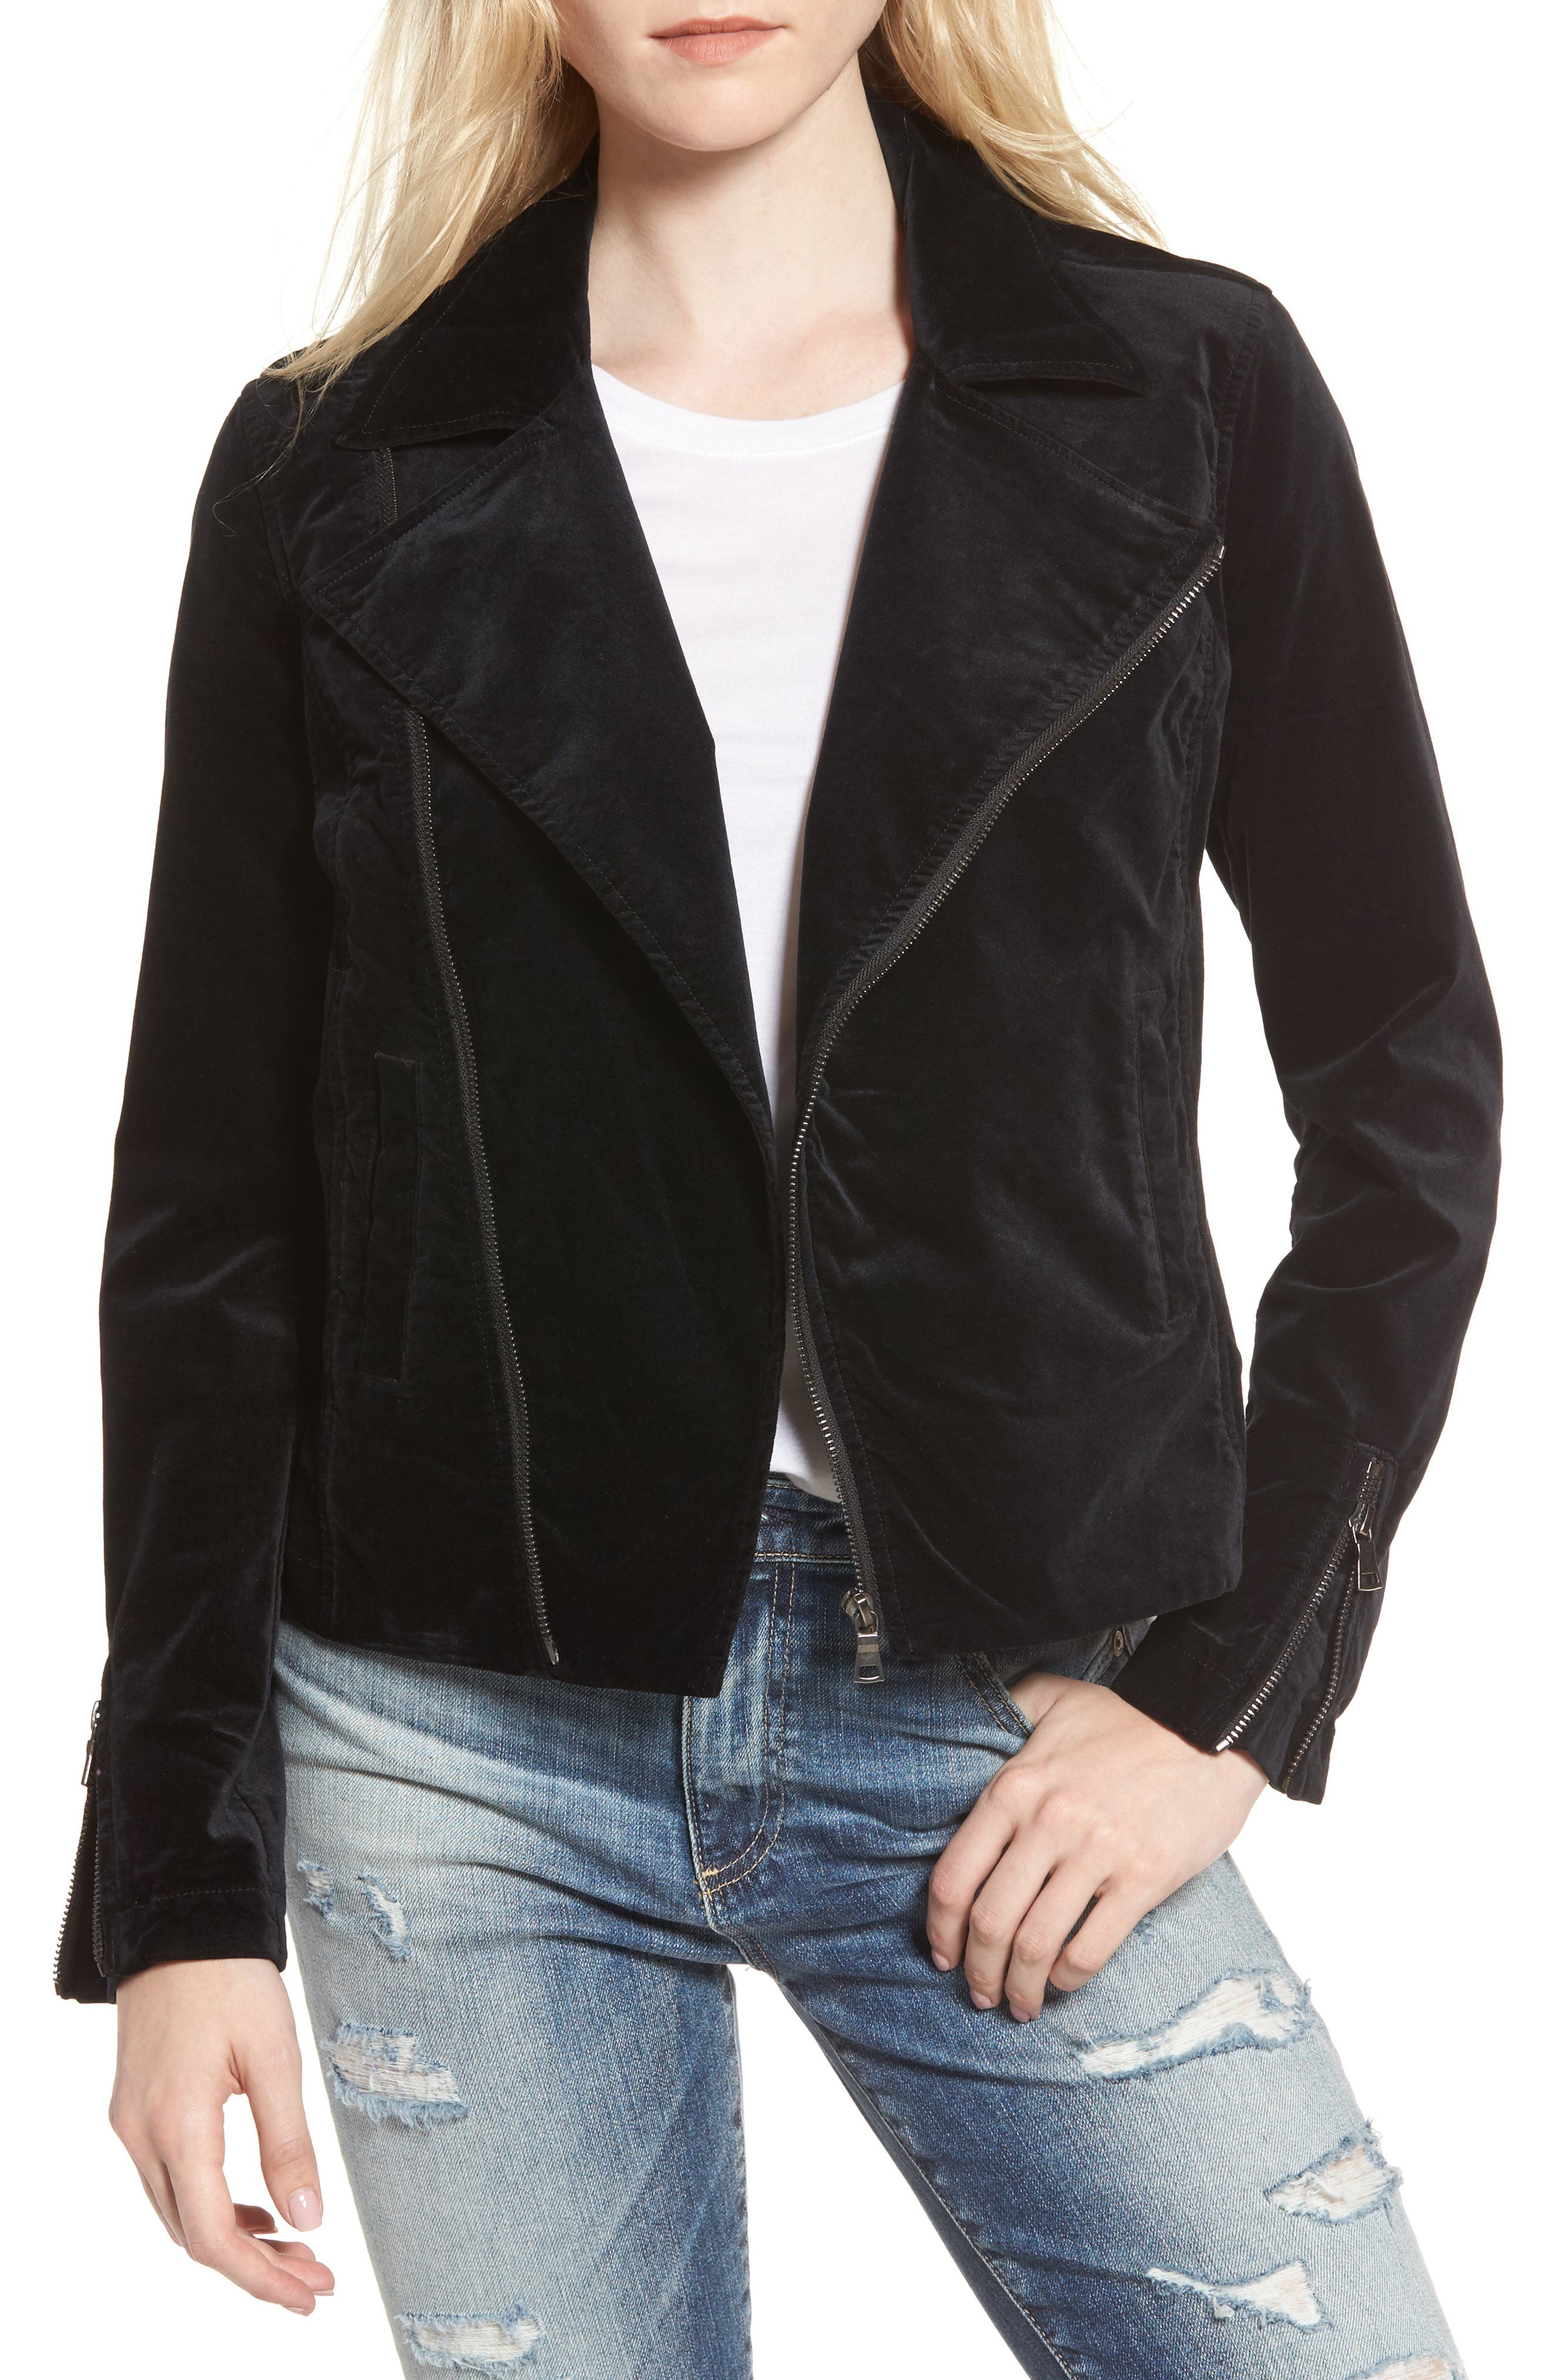 Quincy Velvet Biker Jacket,                             Main thumbnail 1, color,                             001